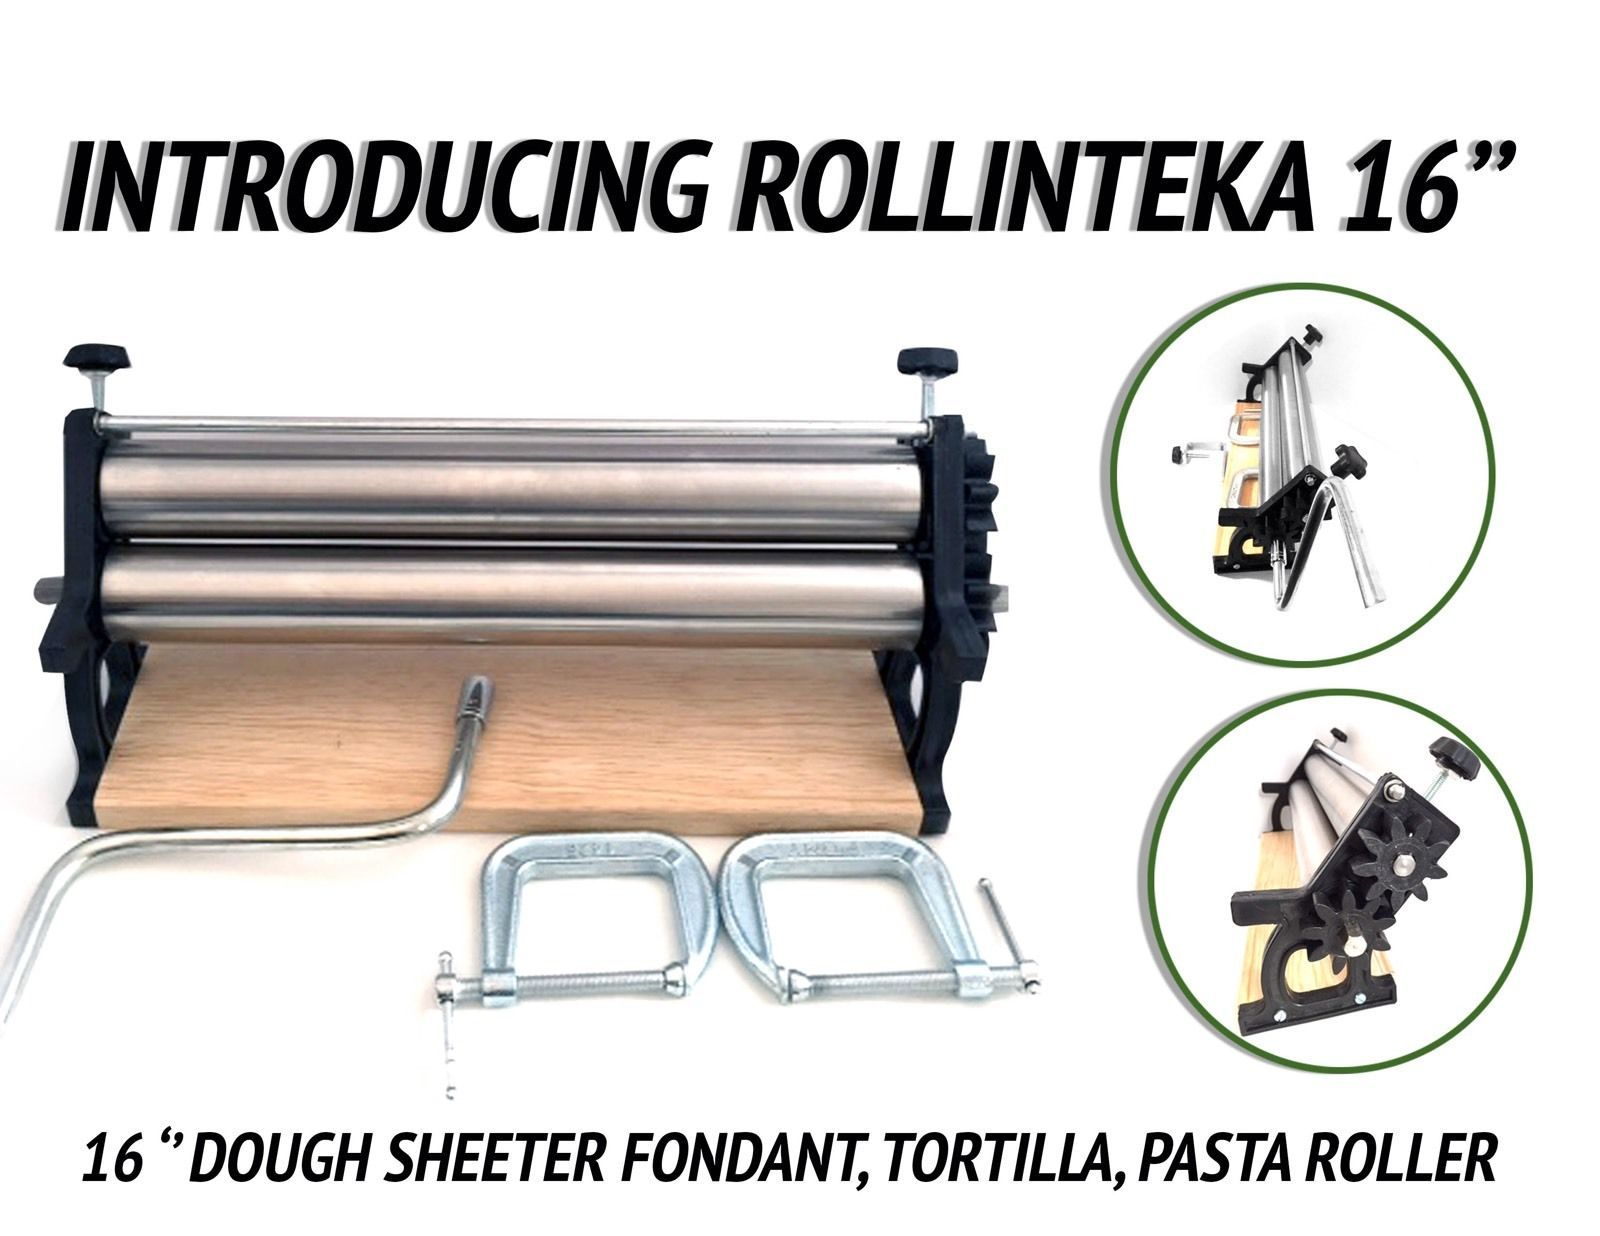 16 Dough Sheeter Pizza Fondant Tortilla Pasta Roller Pasta